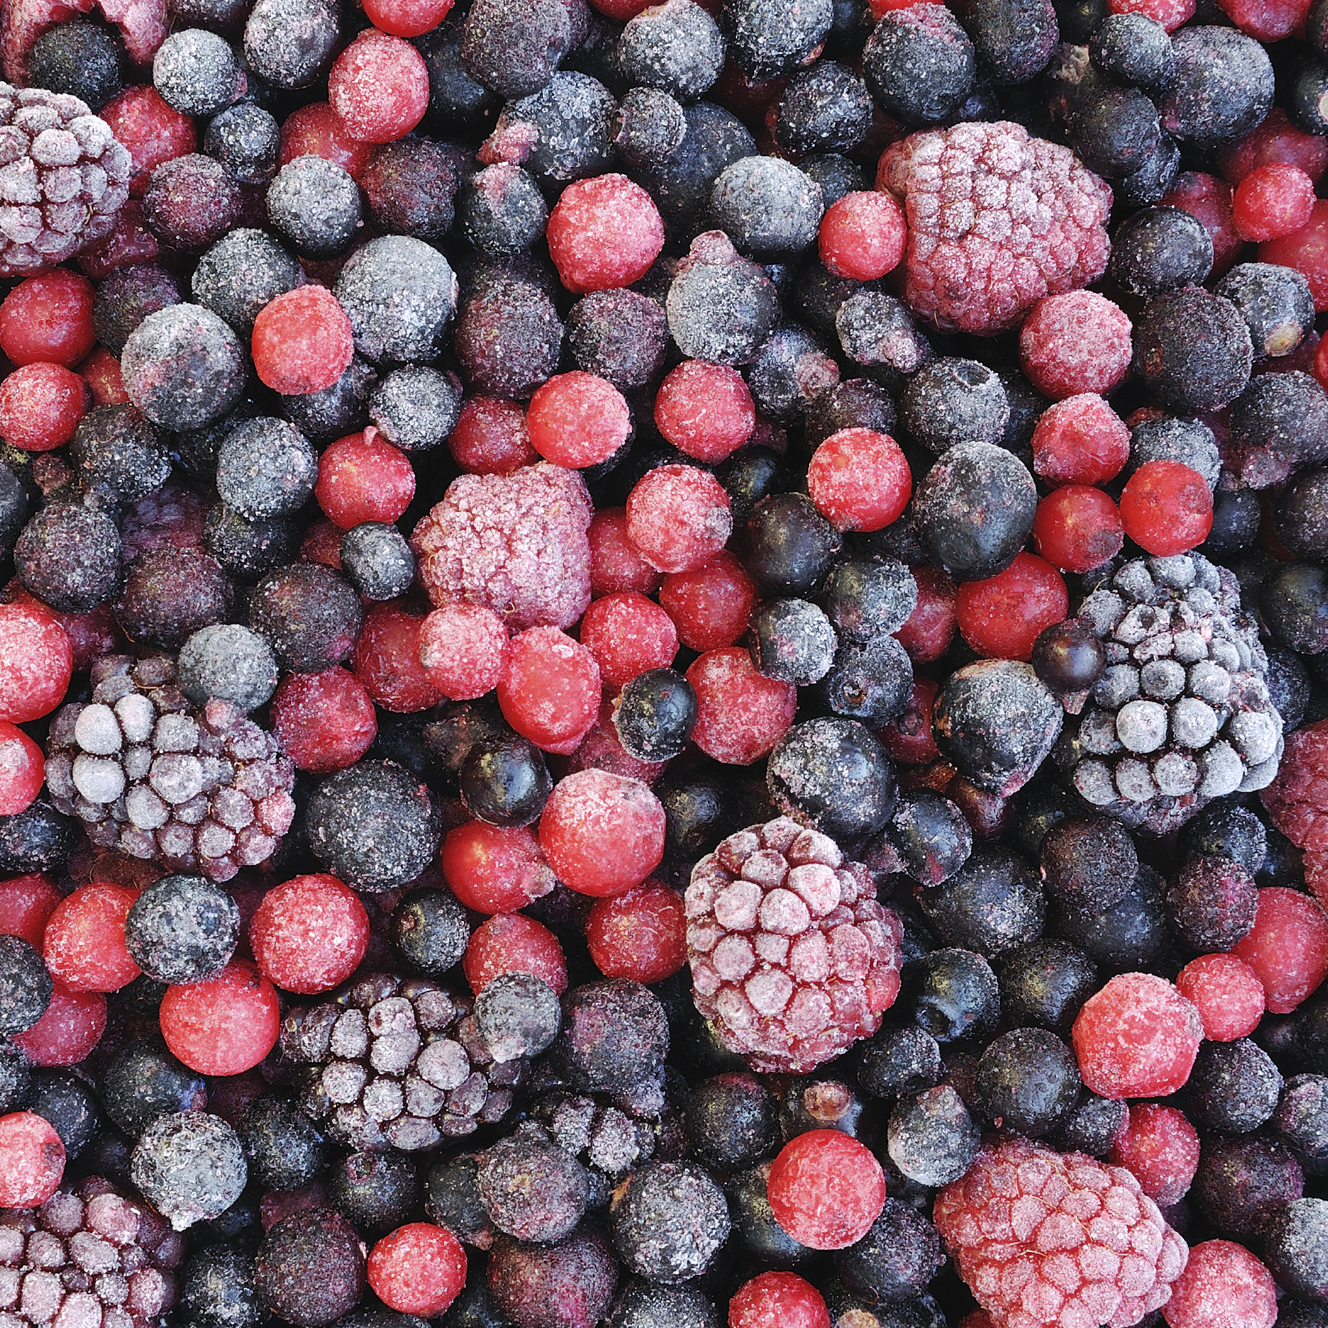 Frozen berries from Turkey were implicated in a hepatitis A outbreak in June.